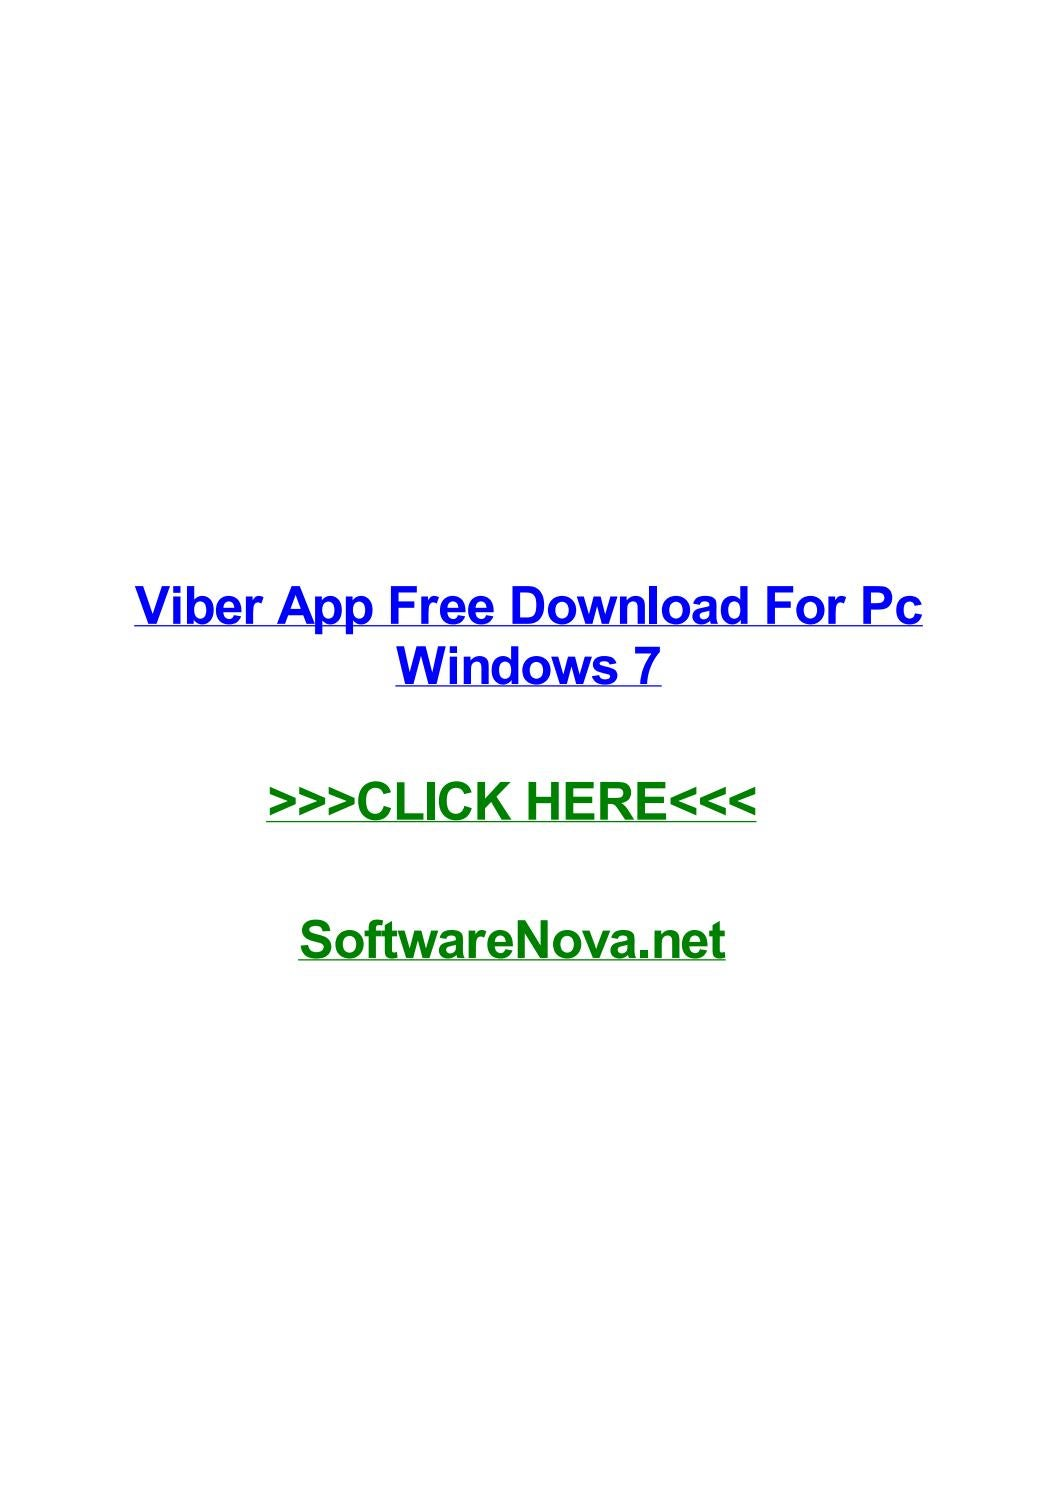 Viber app free download for pc windows 7 by carljmmin - issuu